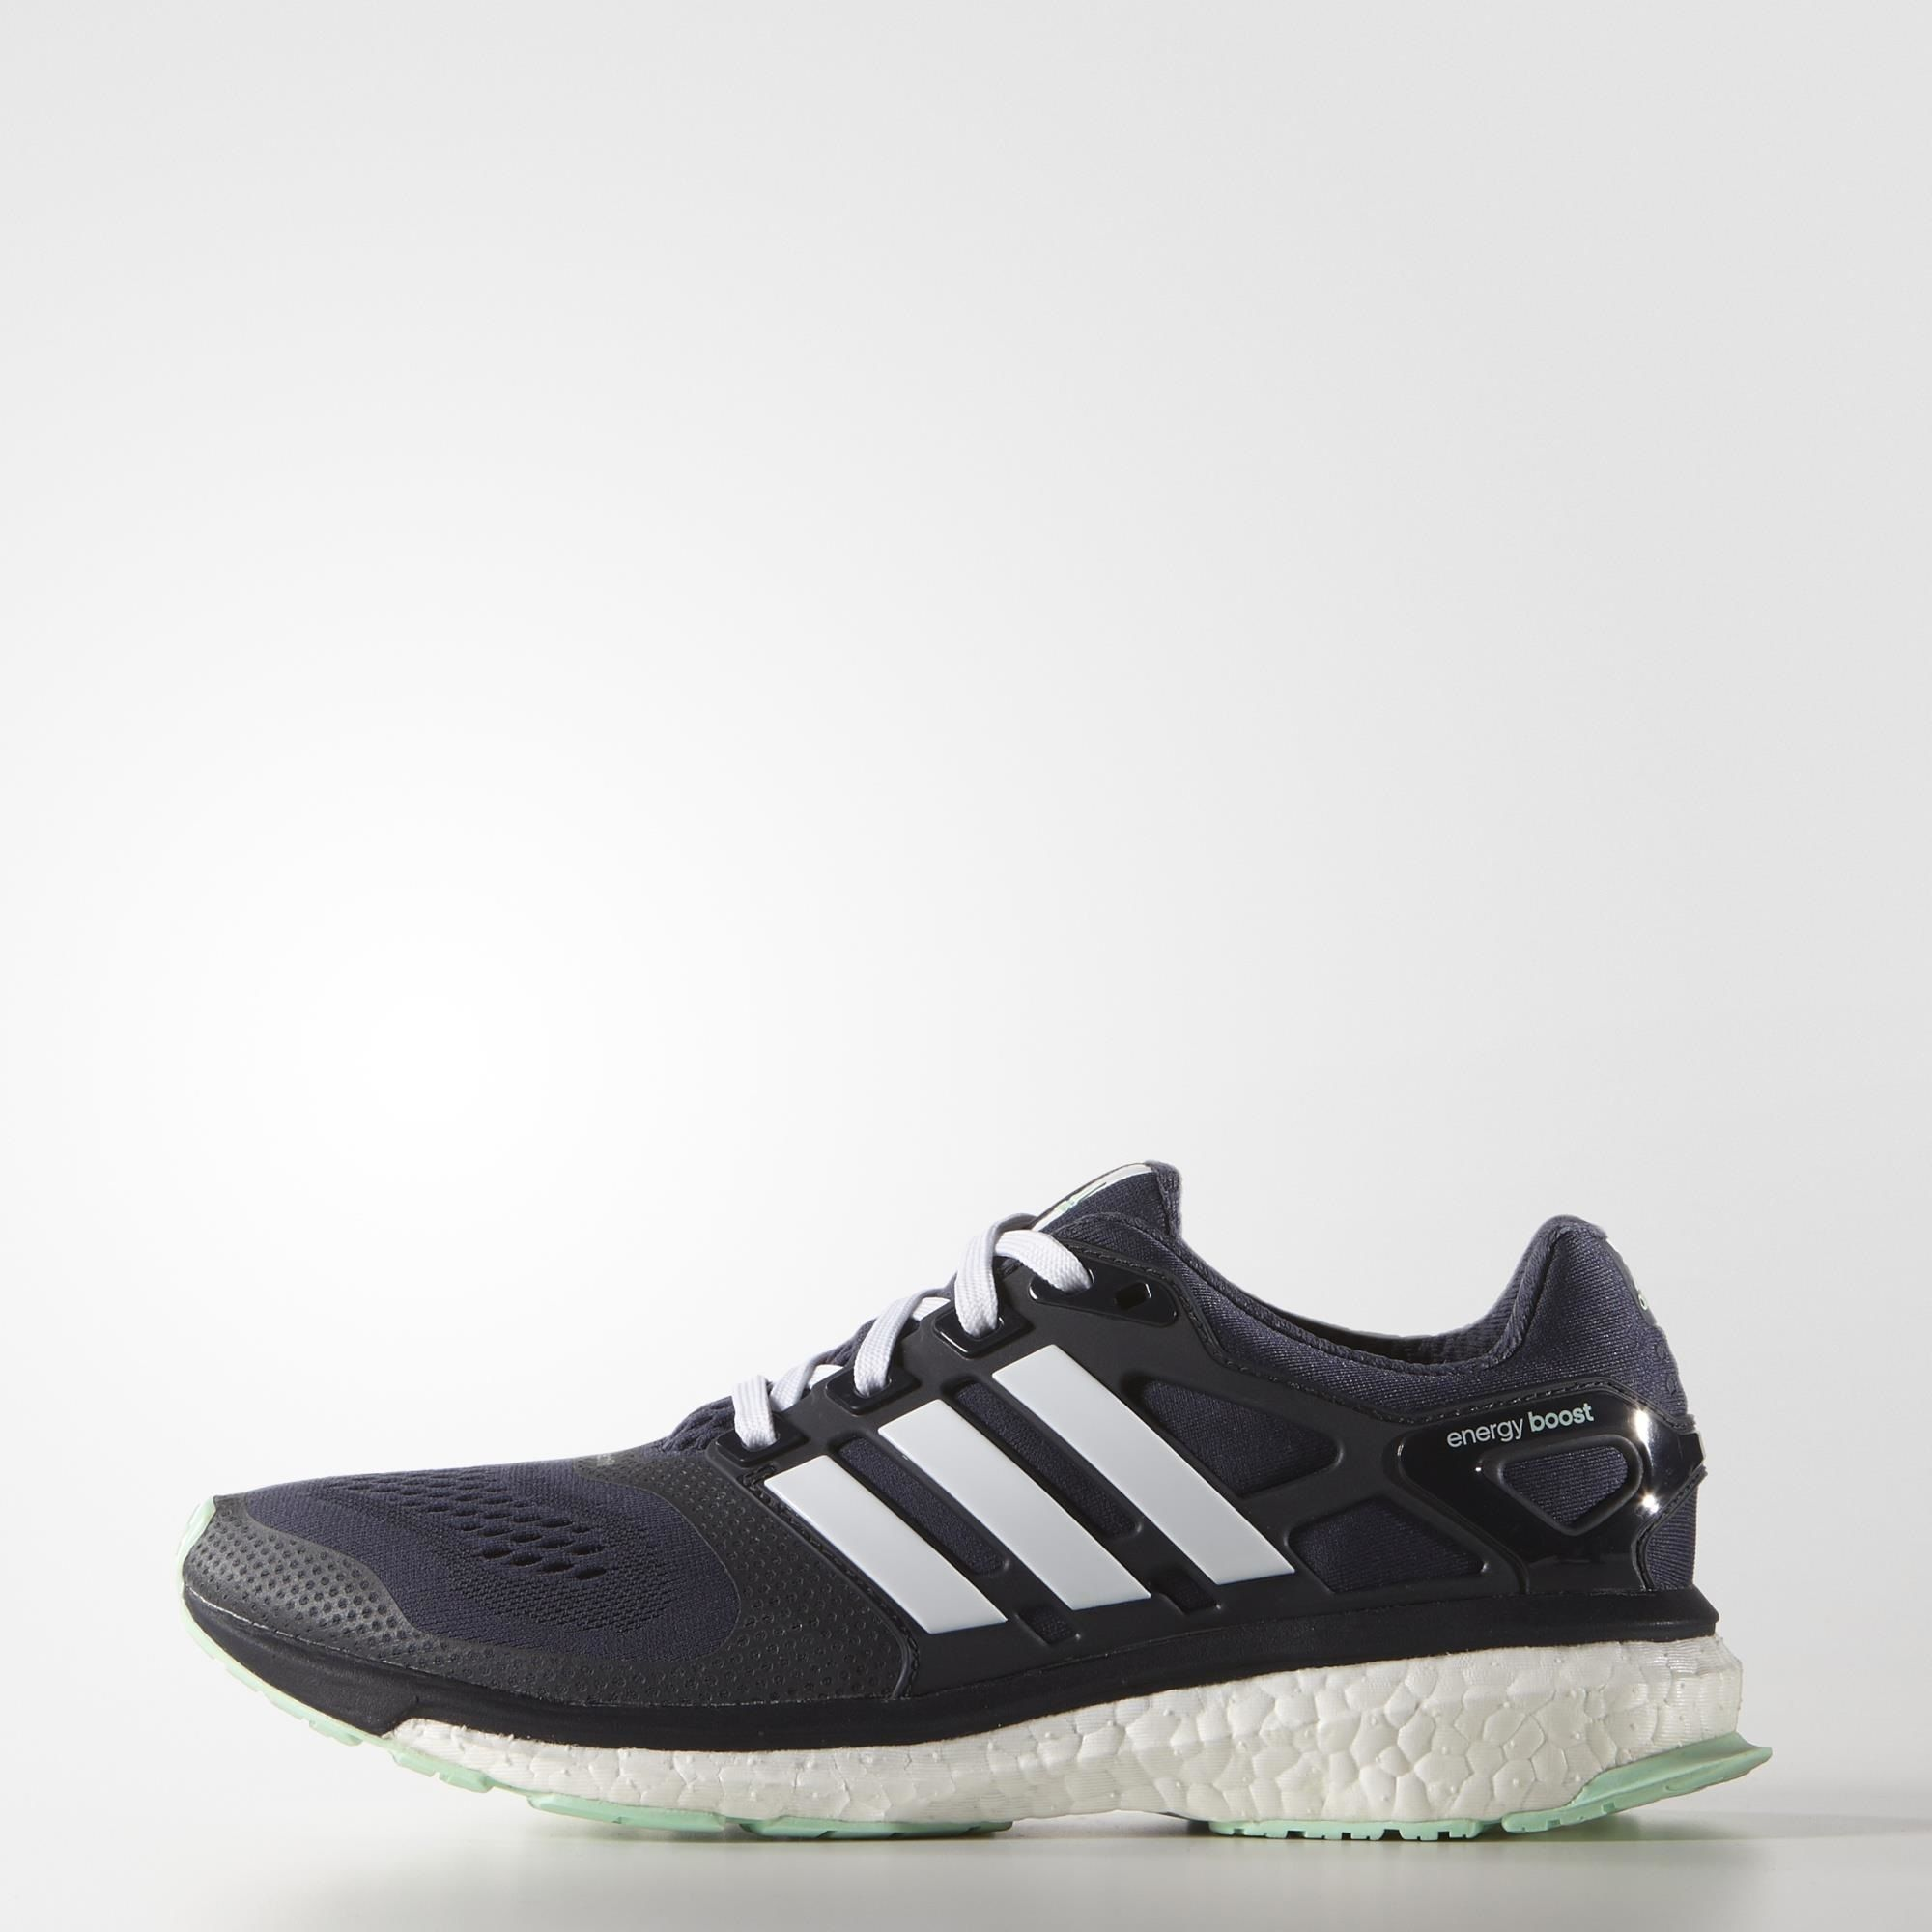 Zapatos adidas Energy Boost Mede lappies Pinterest adidas Boost